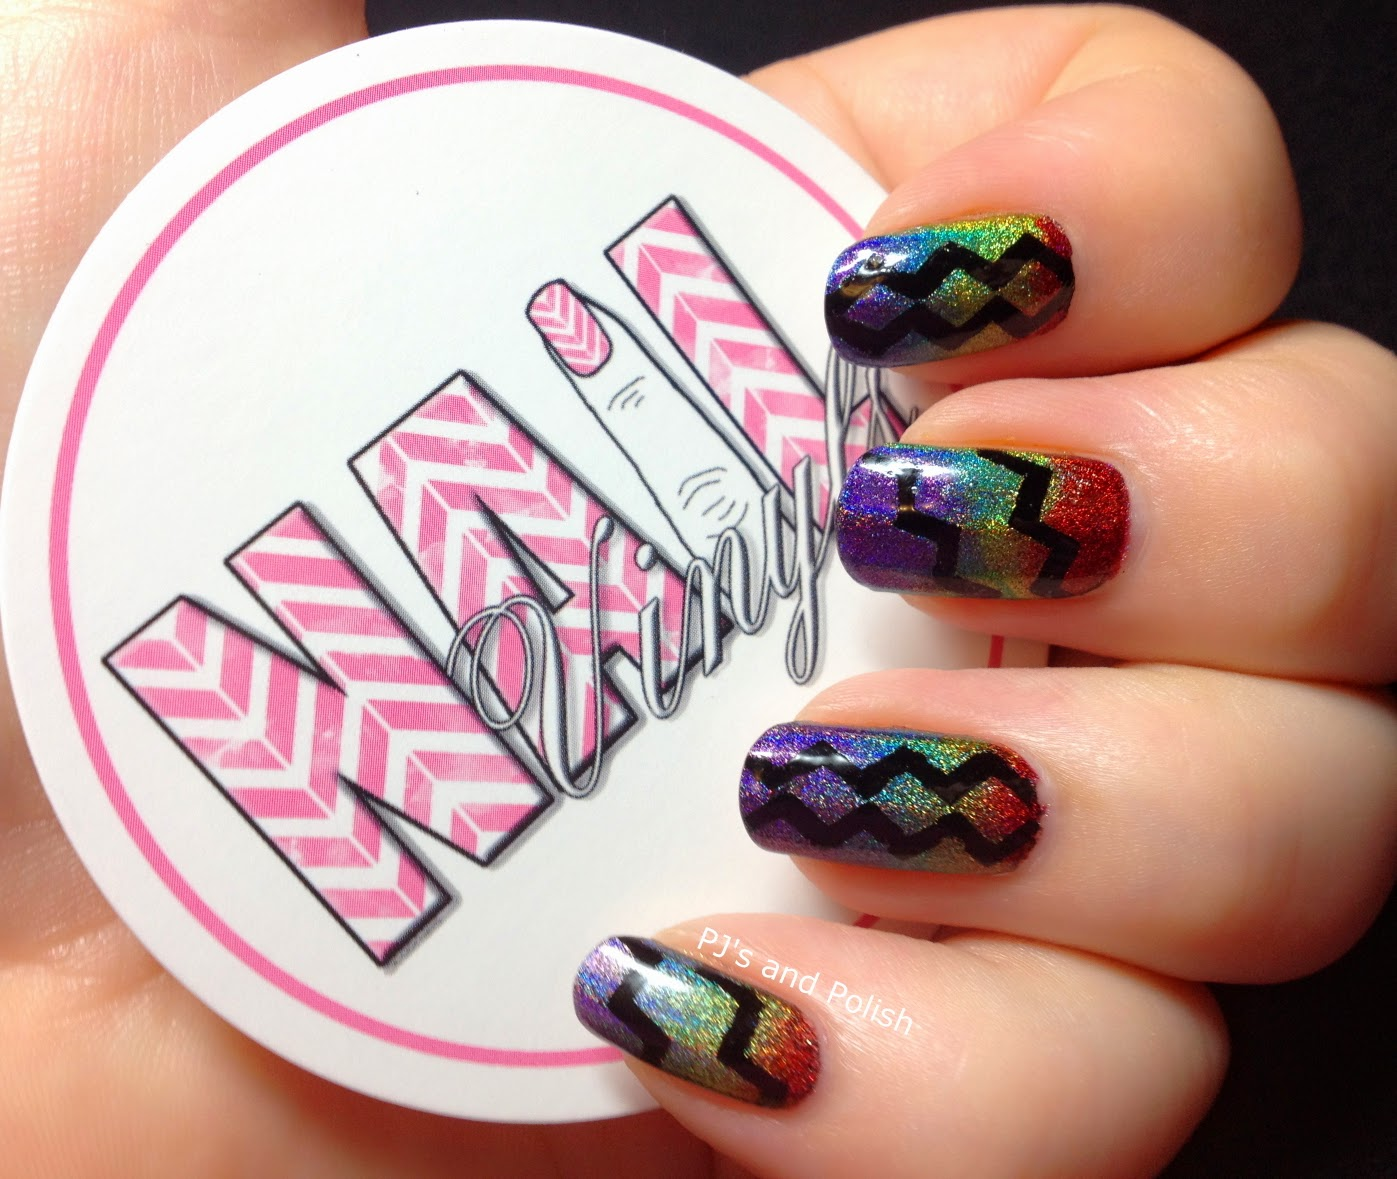 Twin Mani Rainbow Nails Nail Vinyls Colors Frenzy Skinny Chevron FingerPaints Black Expressionism The Mighty Red Baron Woodstock Good Fortune and True Colors HK Girl Duri Rejuvacote